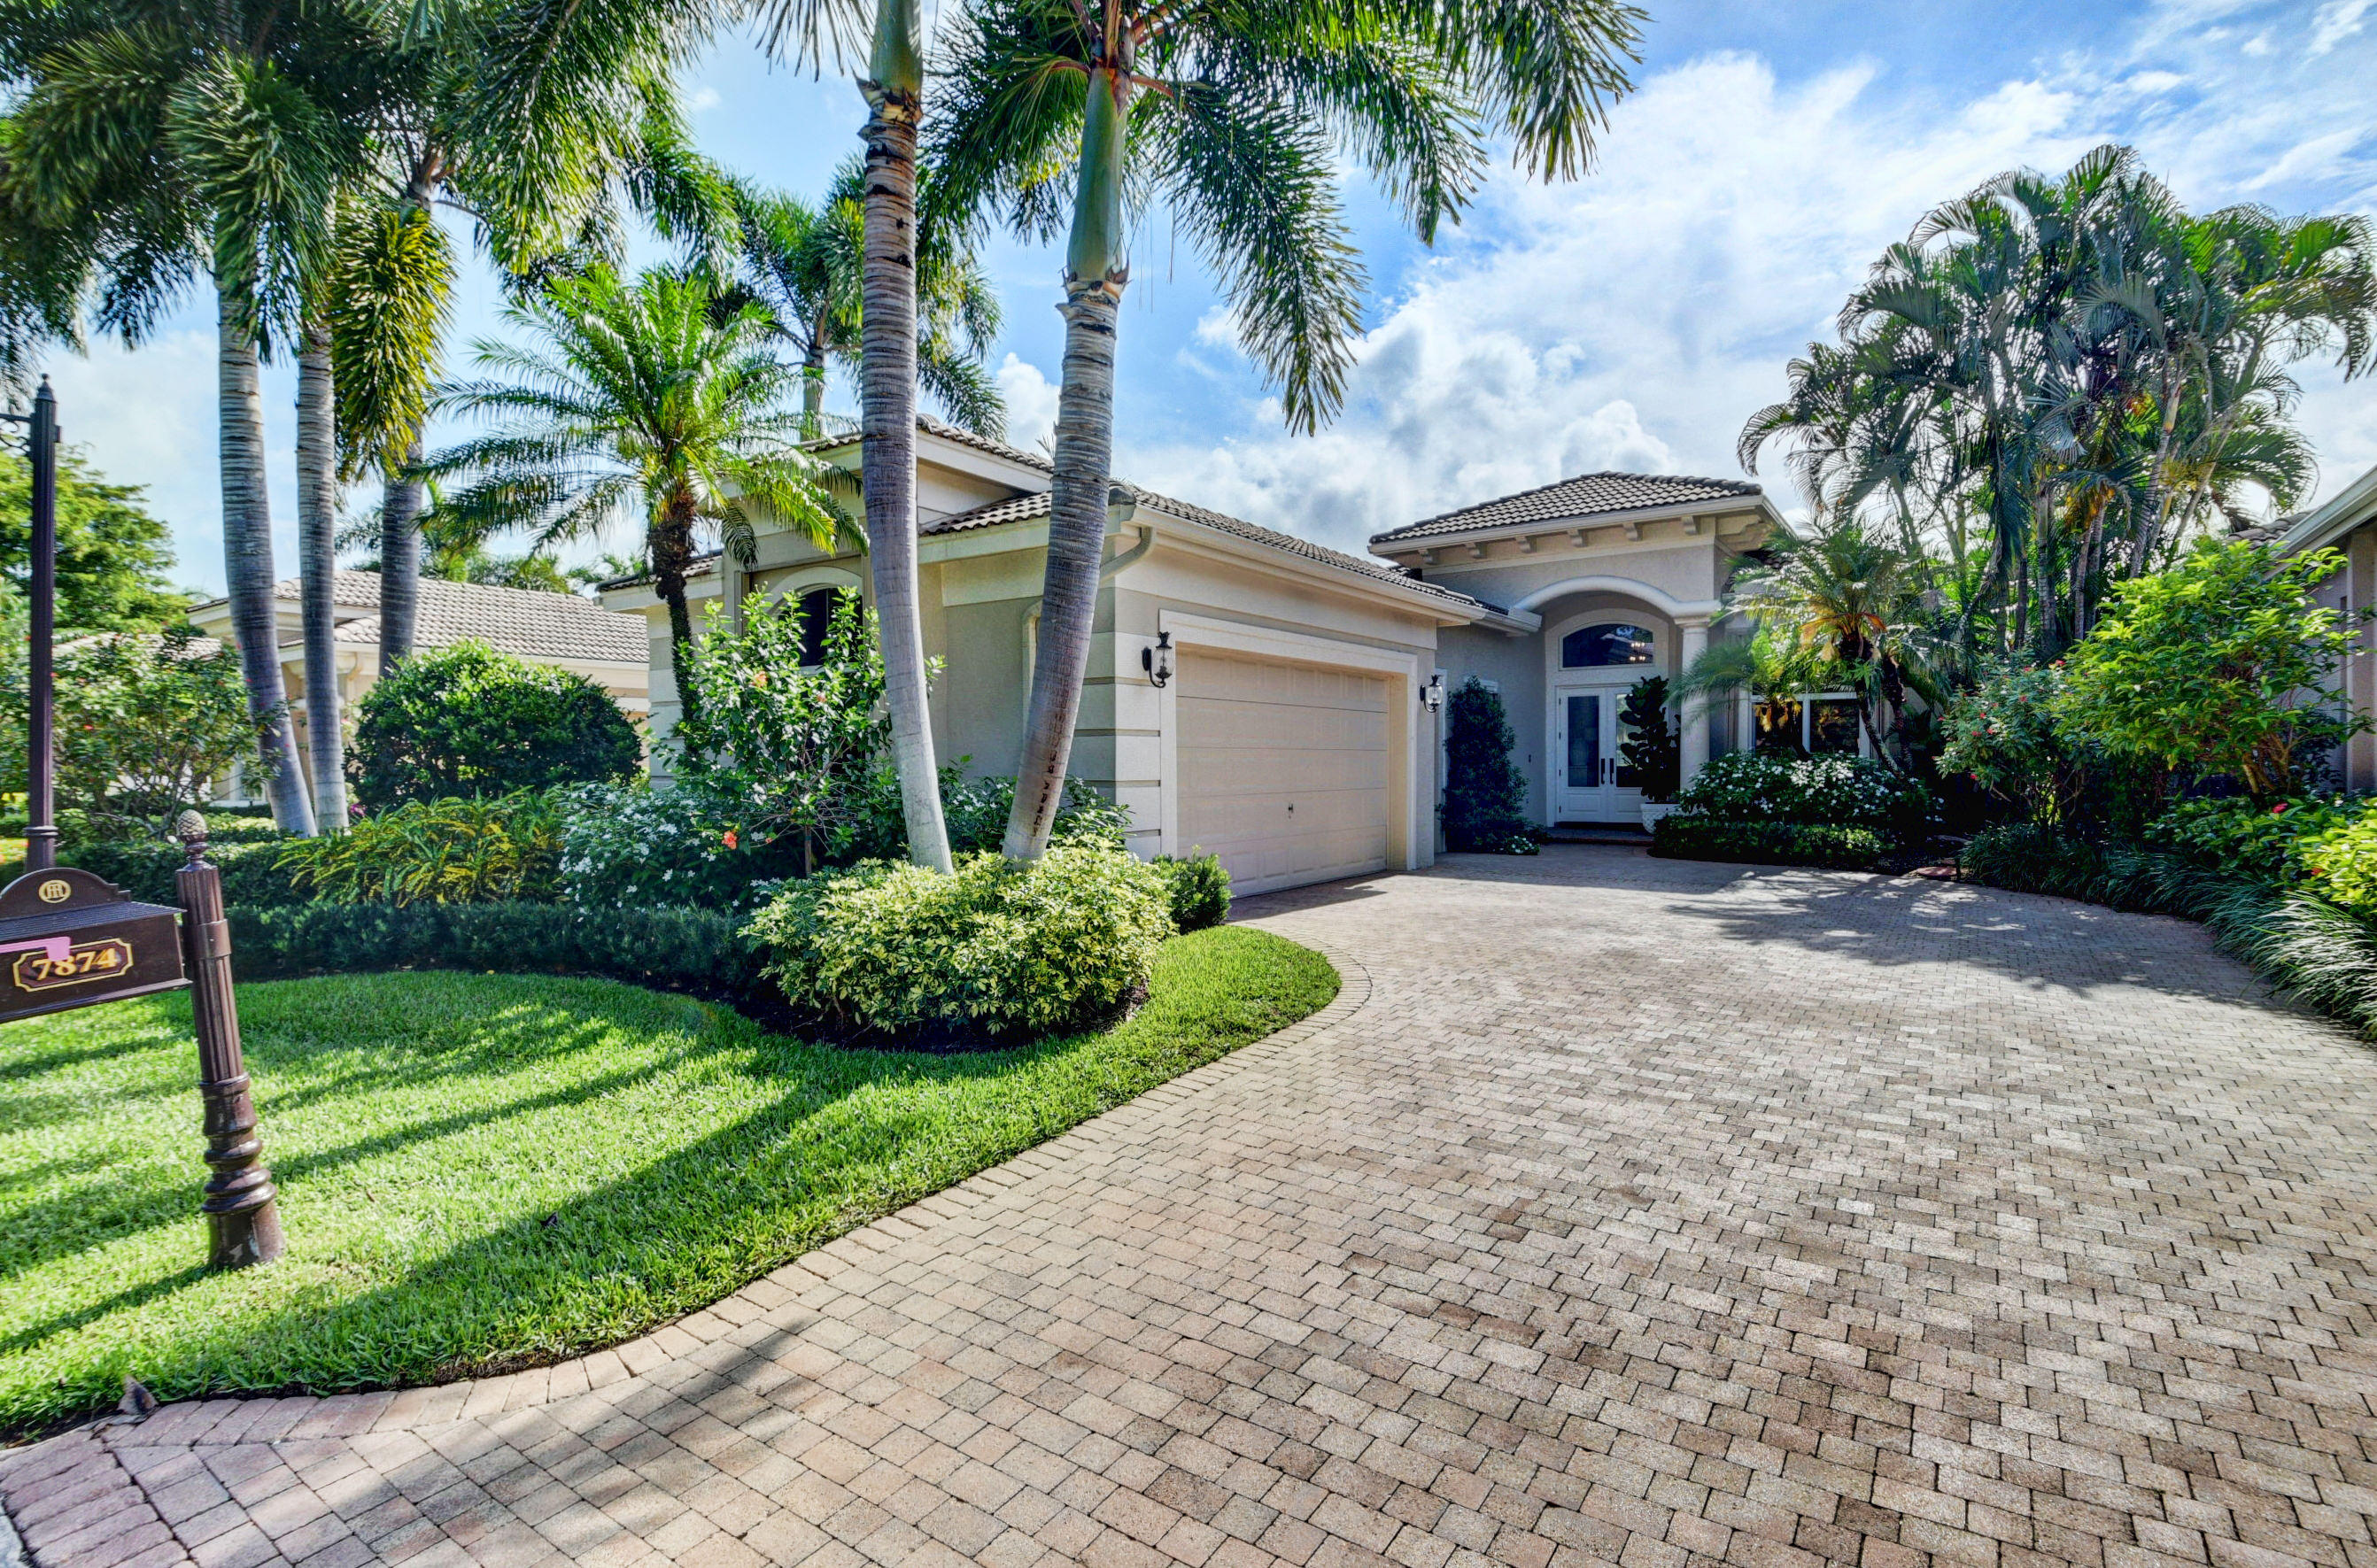 7874 Villa D Este Way  Delray Beach, FL 33446